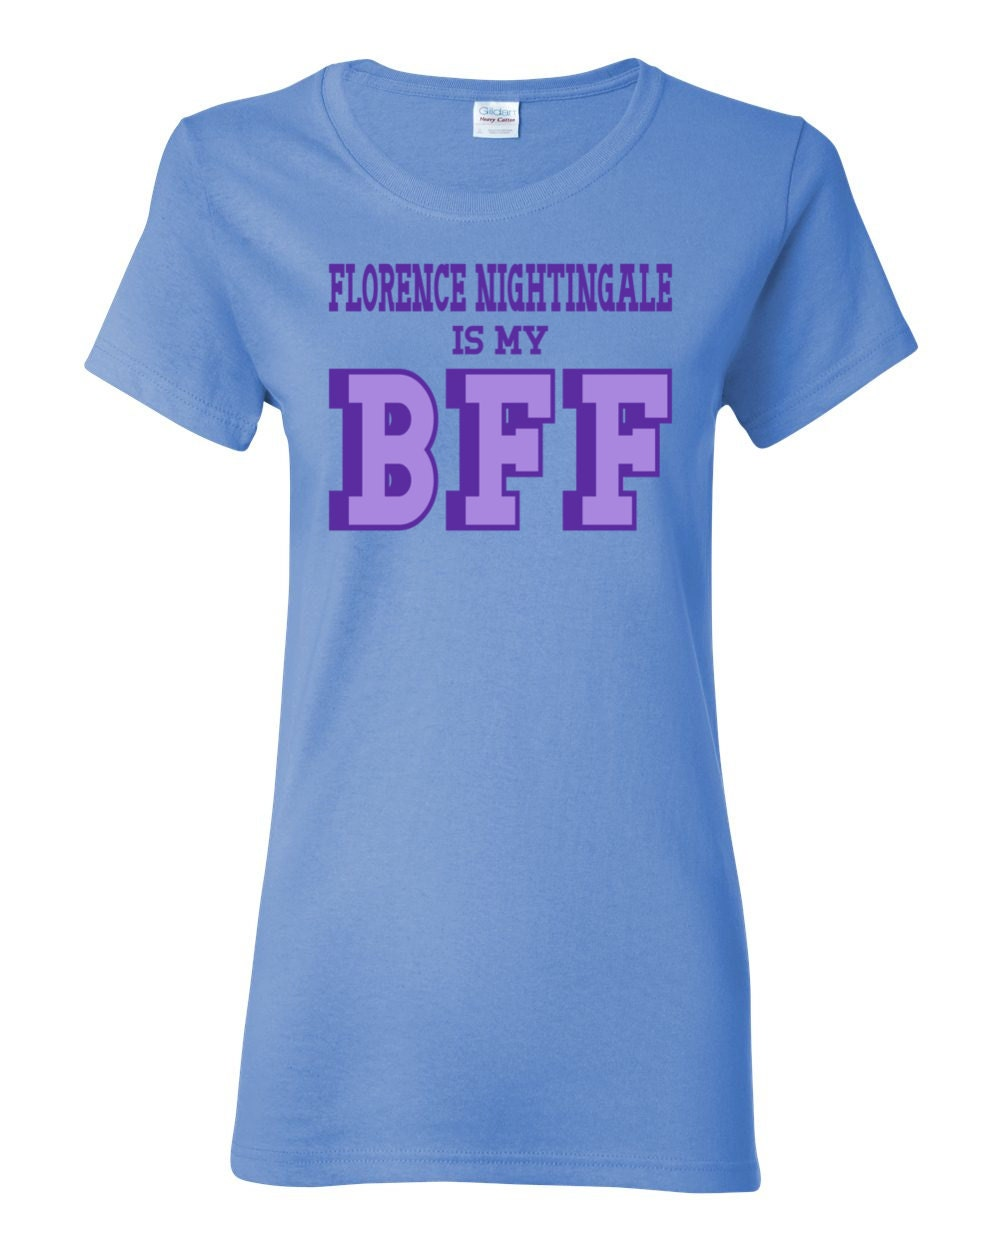 Great Women of History - Florence Nightingale is my BFF Womens History T-shirt